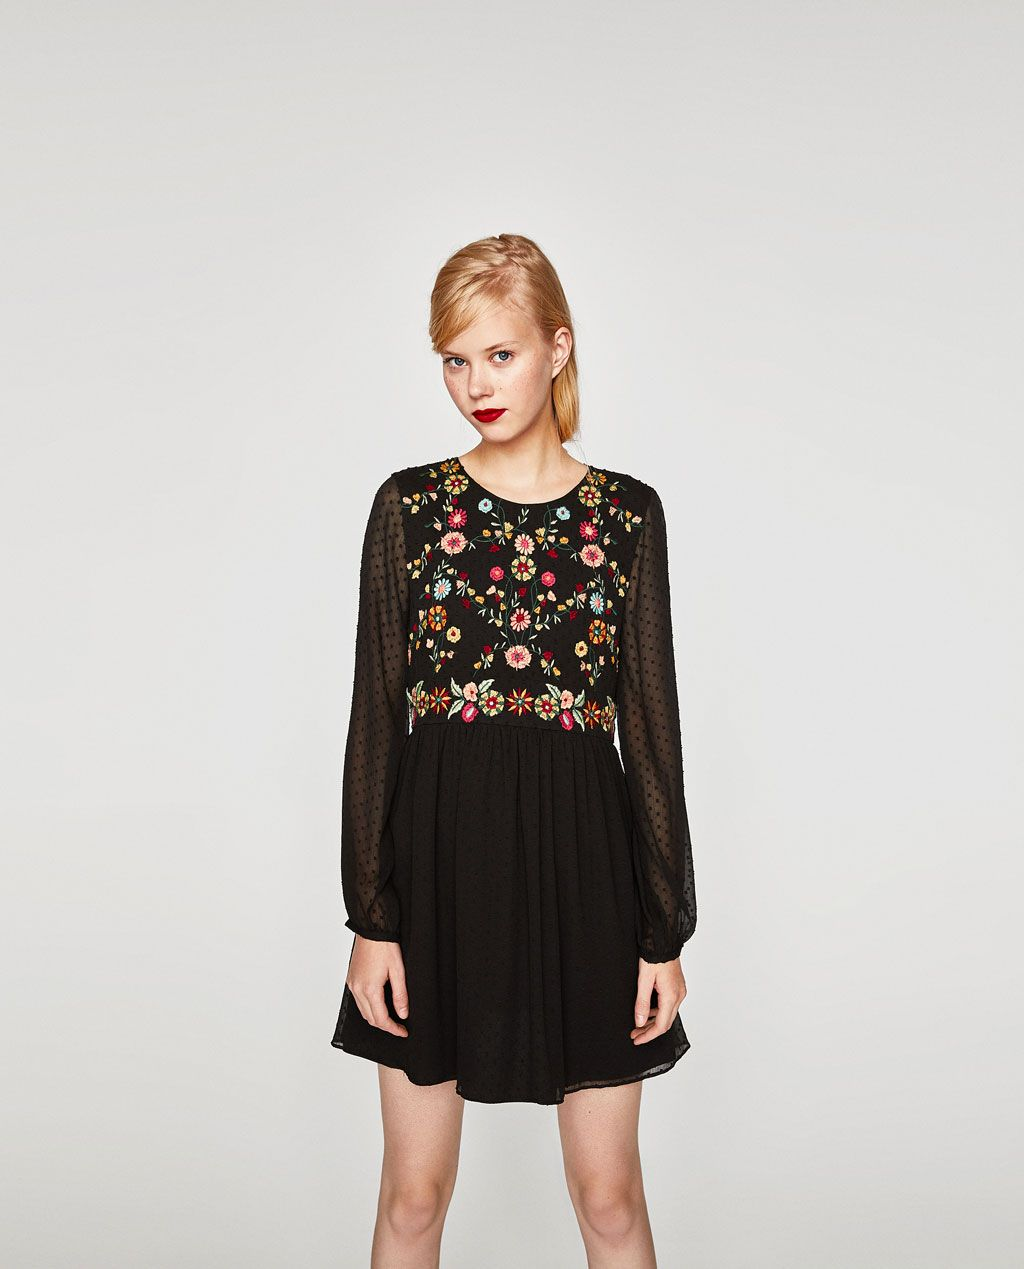 4627f2ba451 Image 2 of EMBROIDERED DOTTED MESH DRESS from Zara